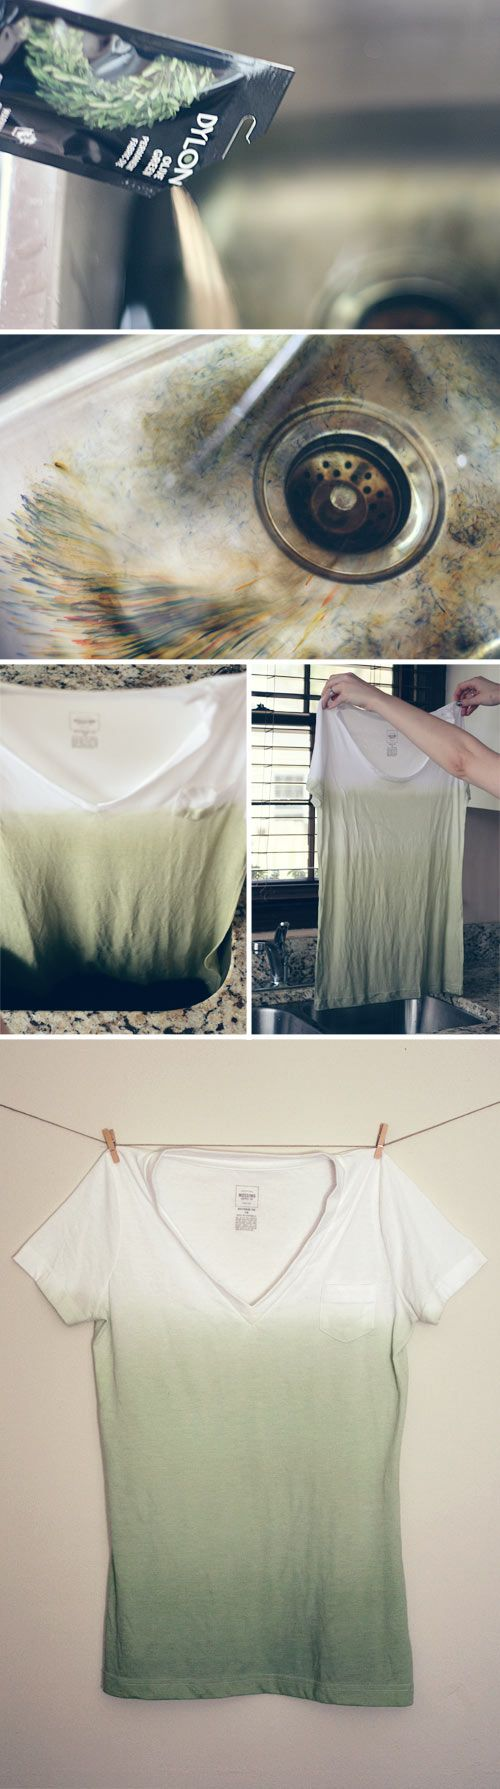 DIY: dip dyed t-shirt